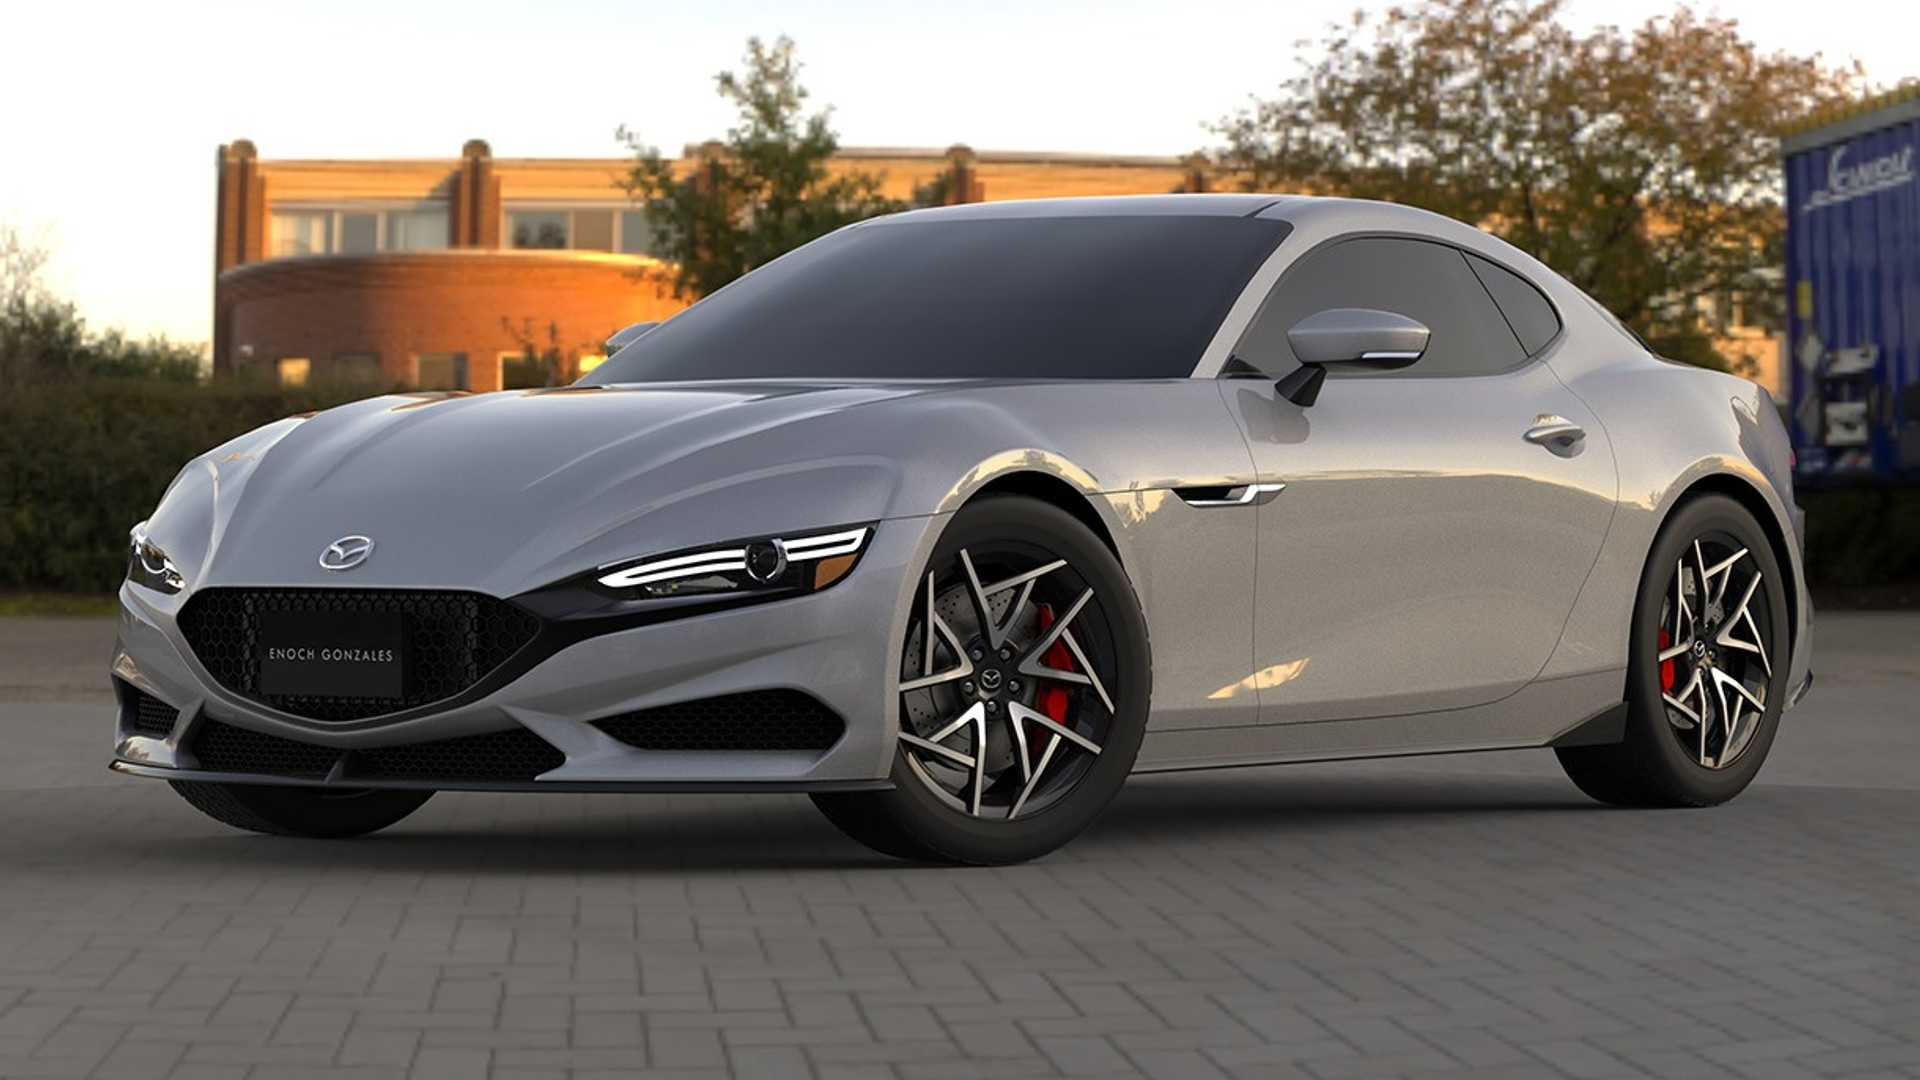 2022 Mazda RX-7 Rendering Looks Too Good To Be True